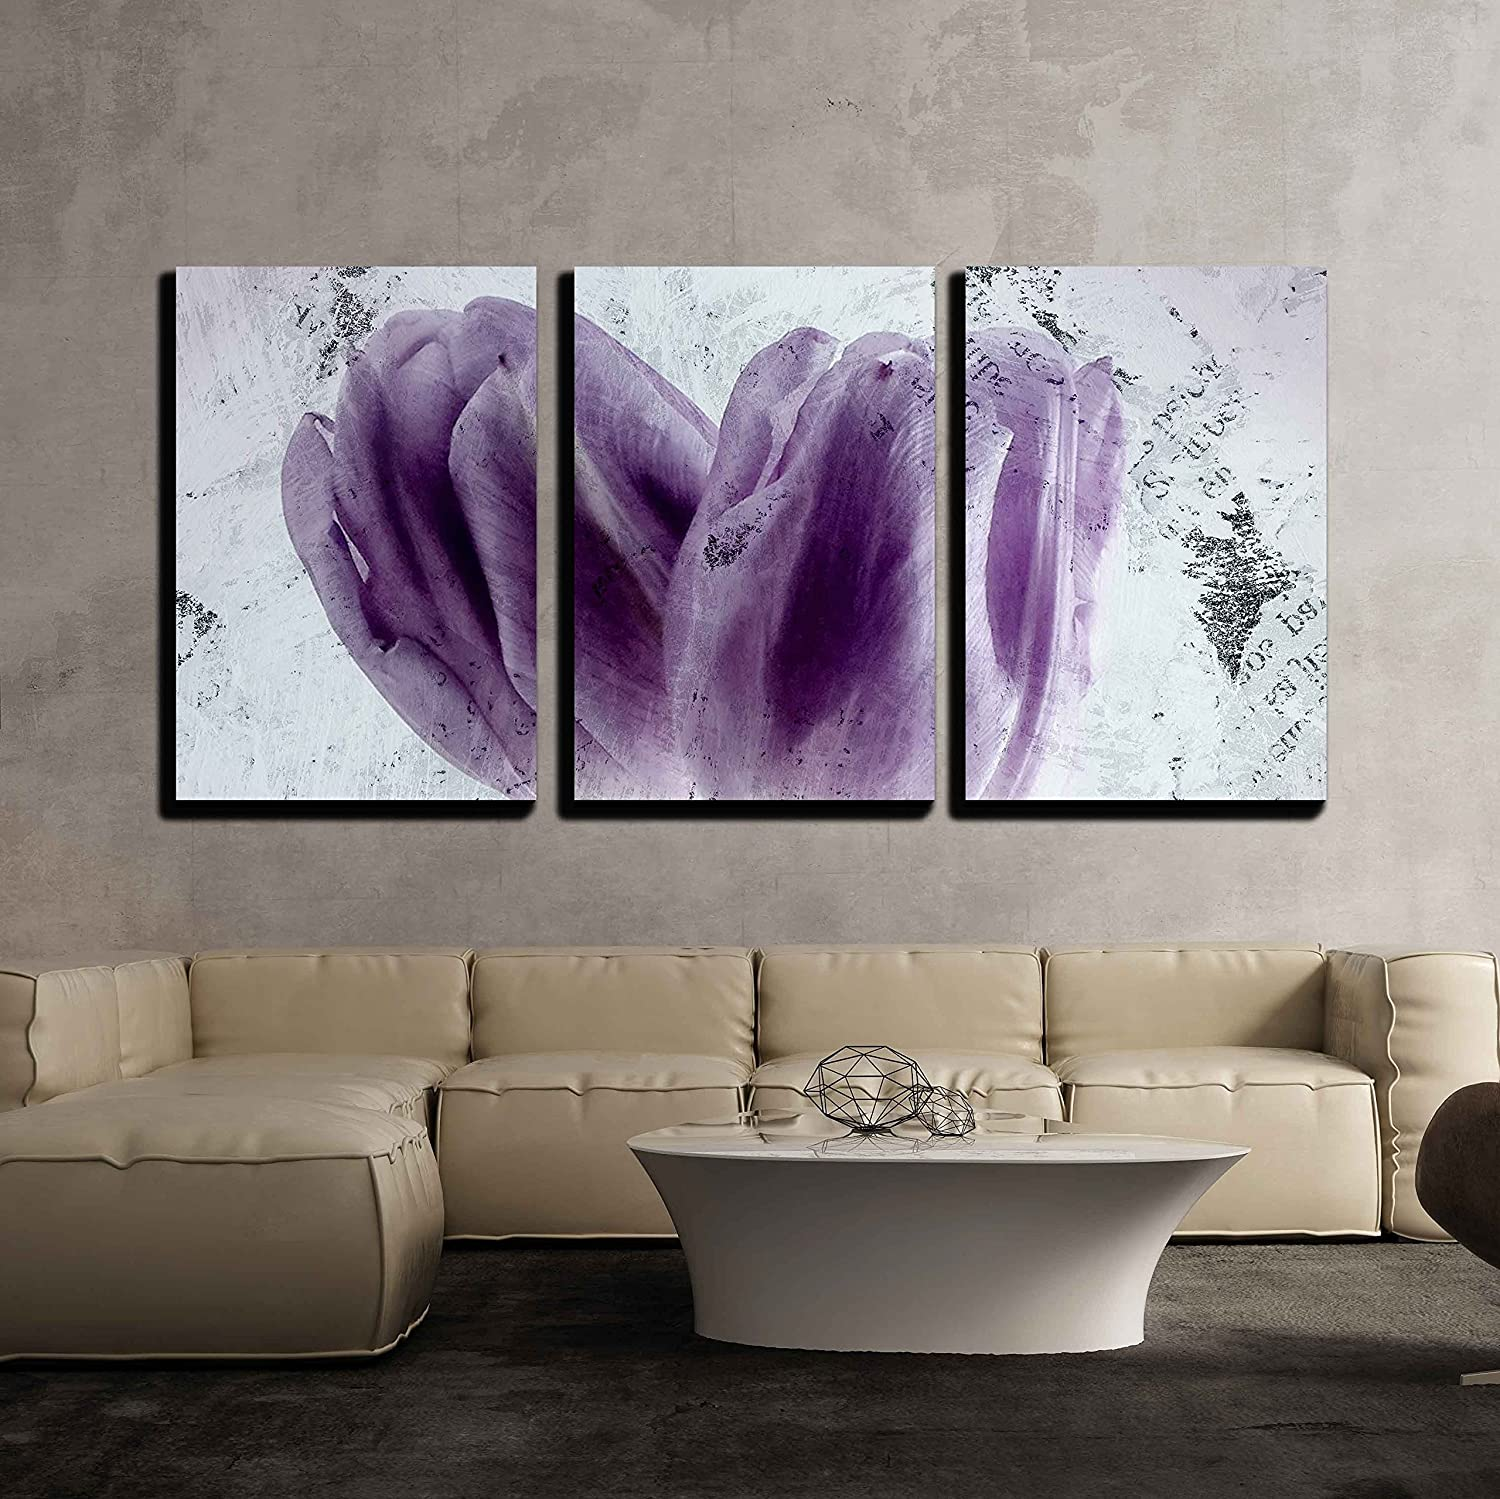 Wall26 art prints framed art canvas prints greeting wall26 3 piece canvas wall art canvas wall art two purple tulip flower petals modern home decor stretched and framed ready to hang 16x24x3 amipublicfo Image collections